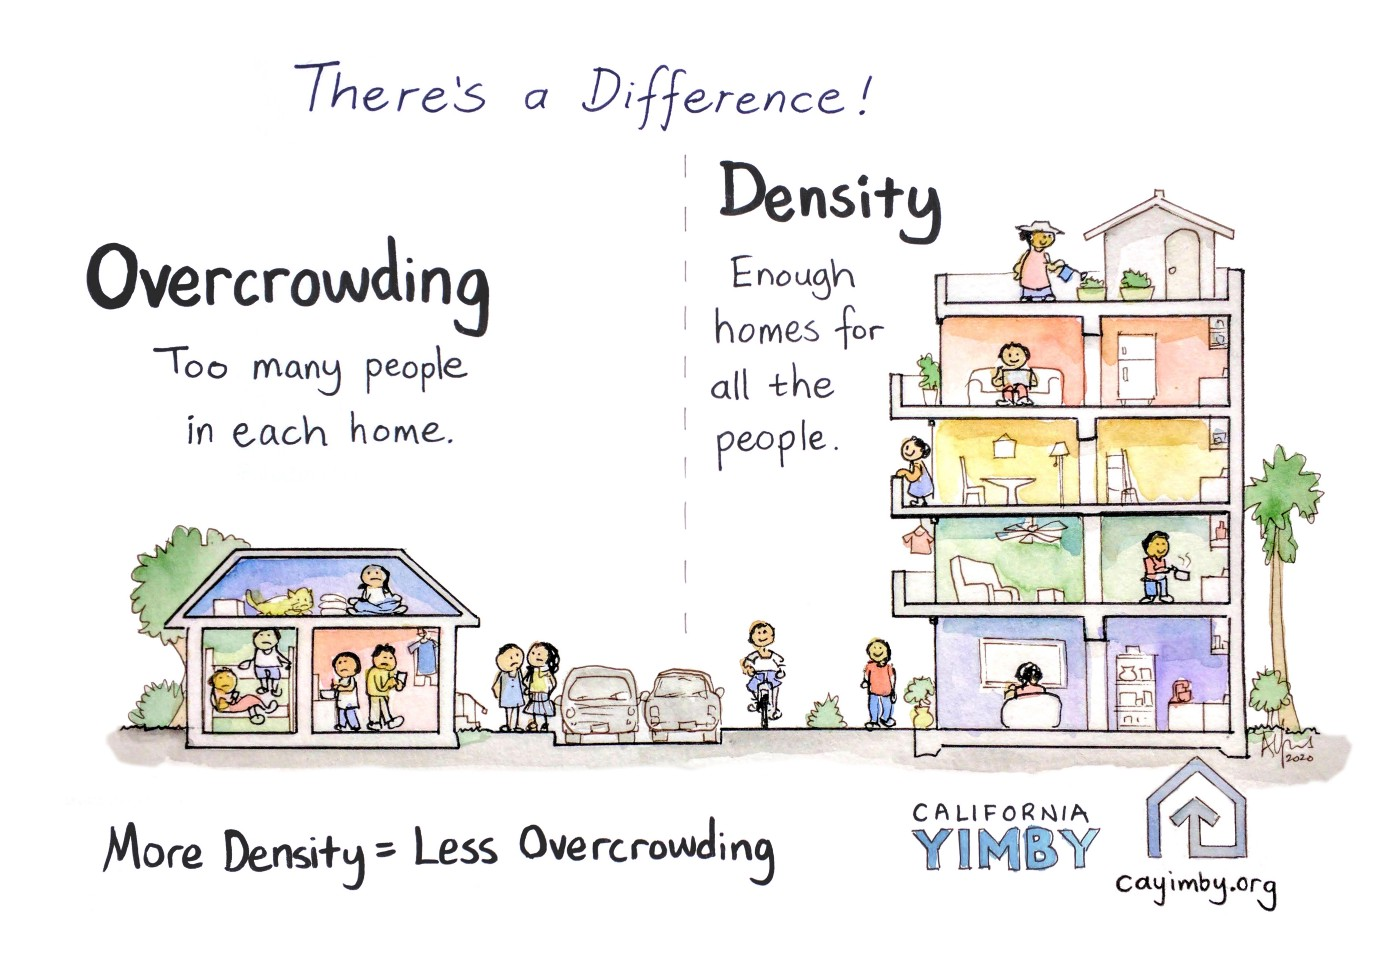 There's a difference: Overcrowding—too many people in each home. Density: enough homes for all the people.